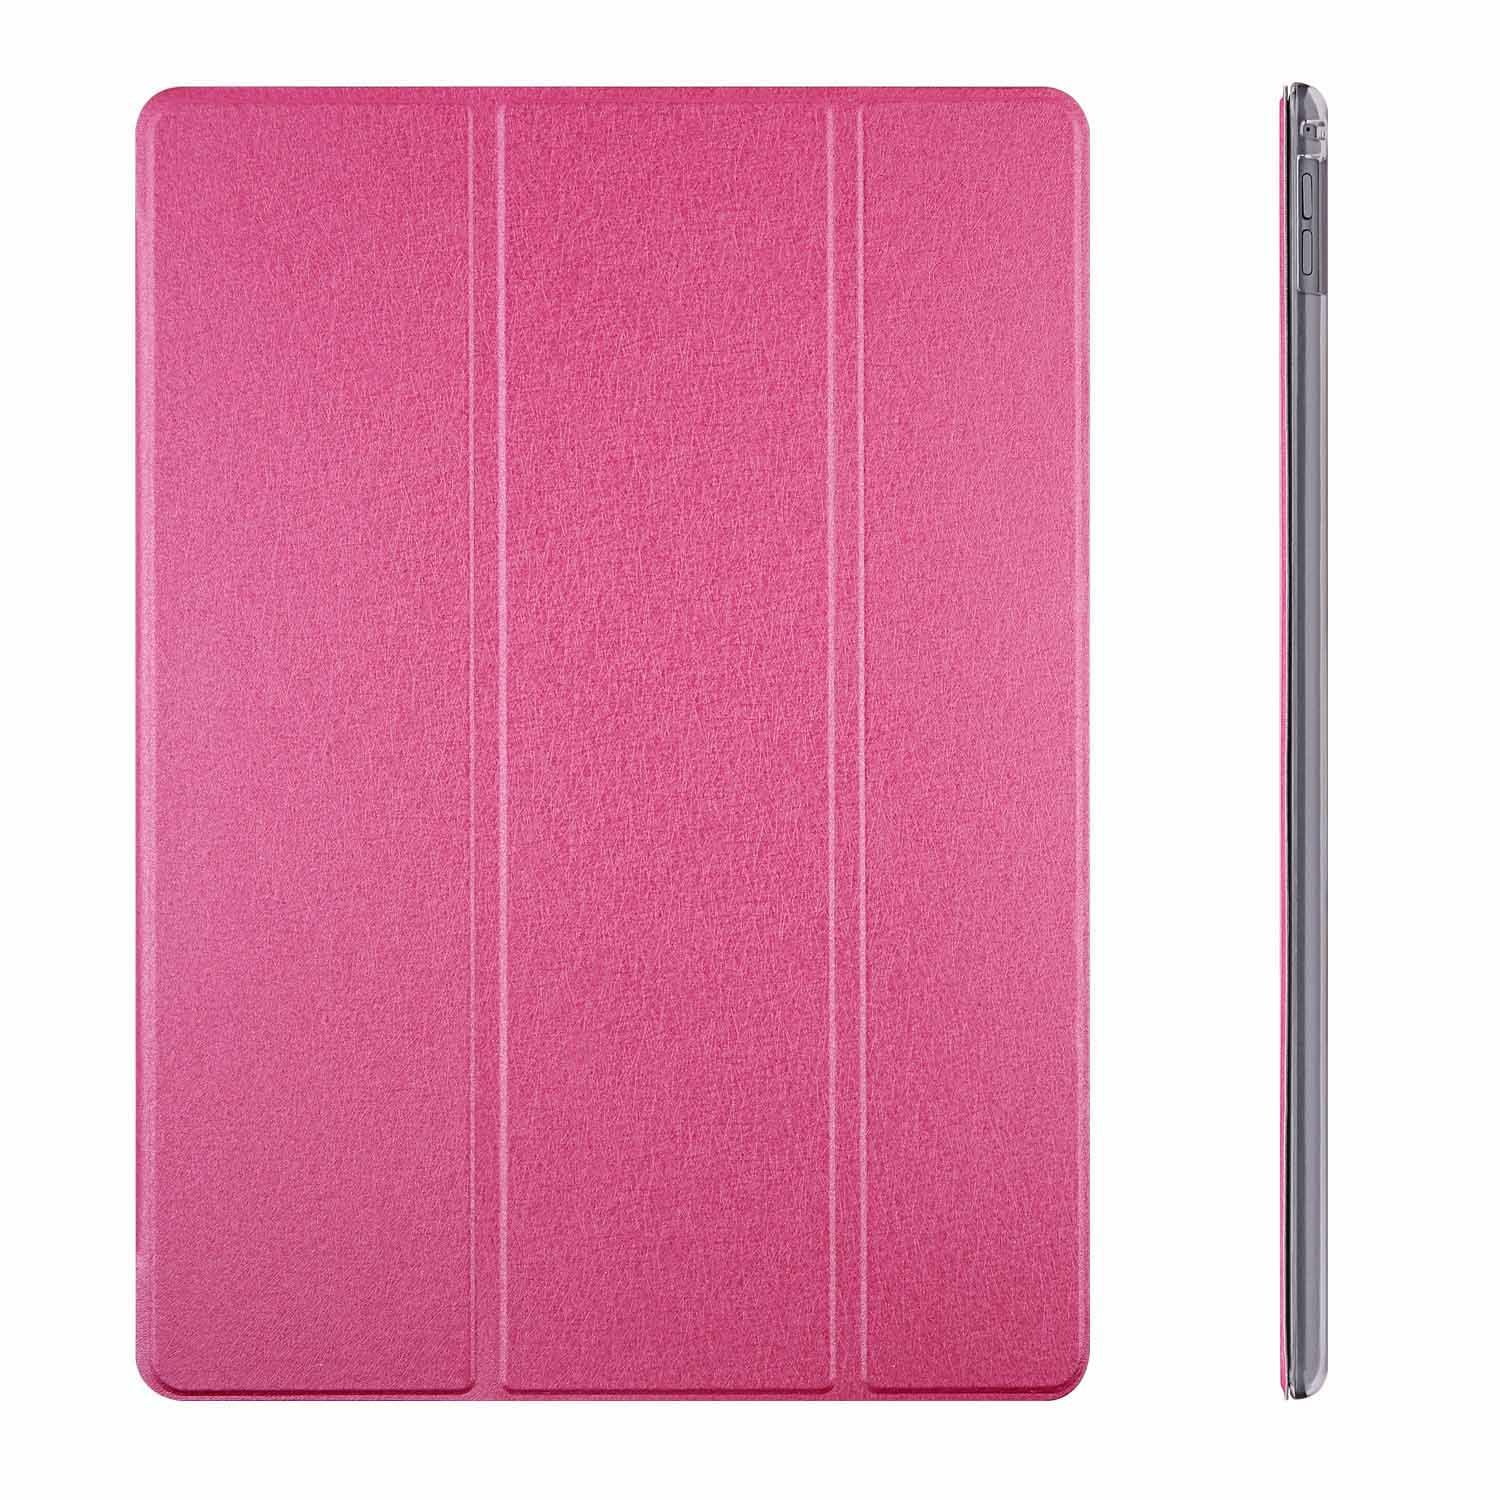 conjoinedleather case for iPad pro with frosted soft transparent TPU and stand anbond (2)